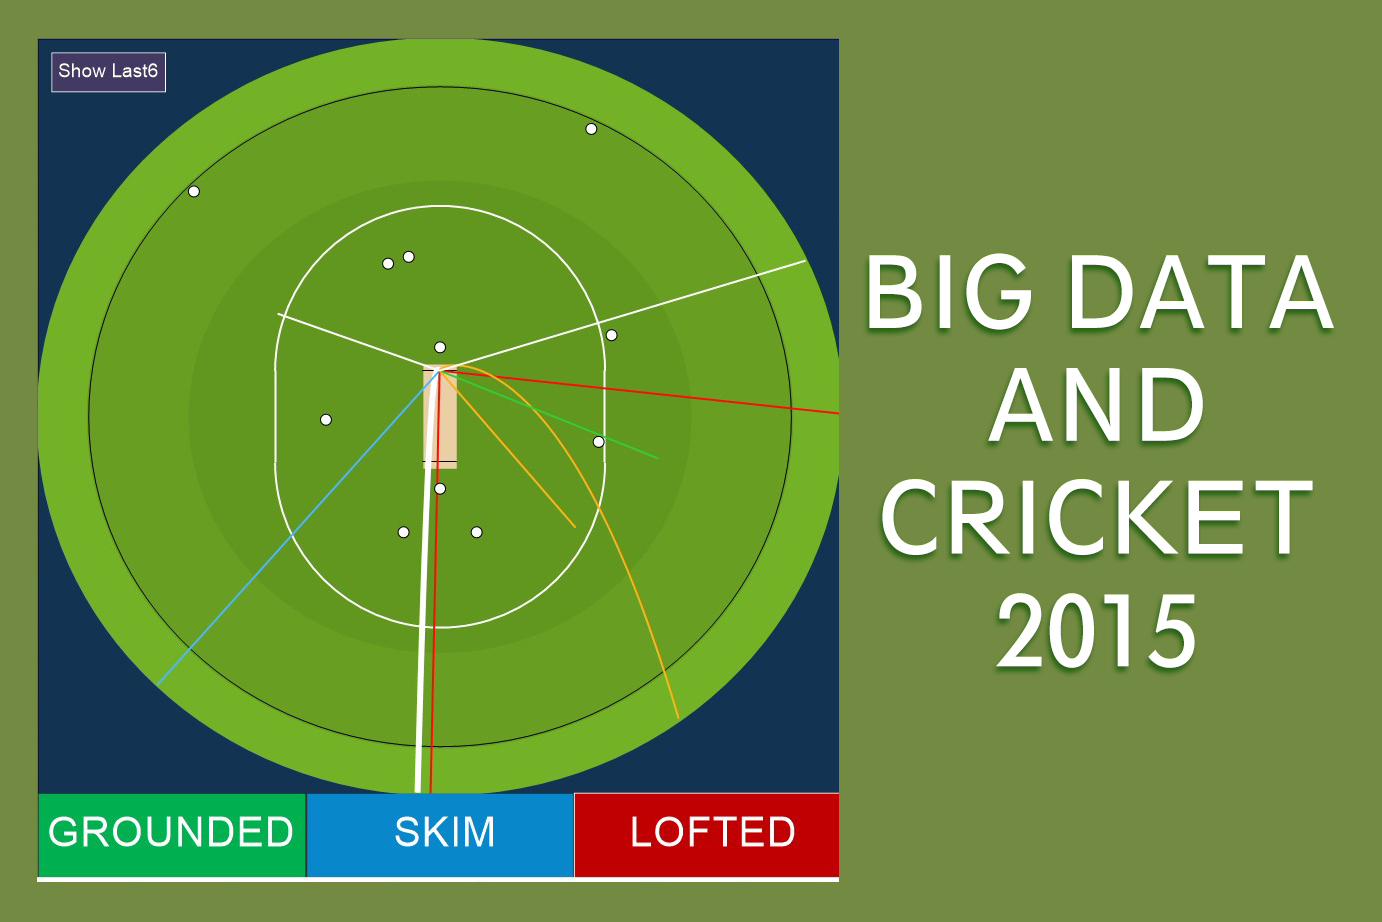 big-data-and-cricket-2015.jpg